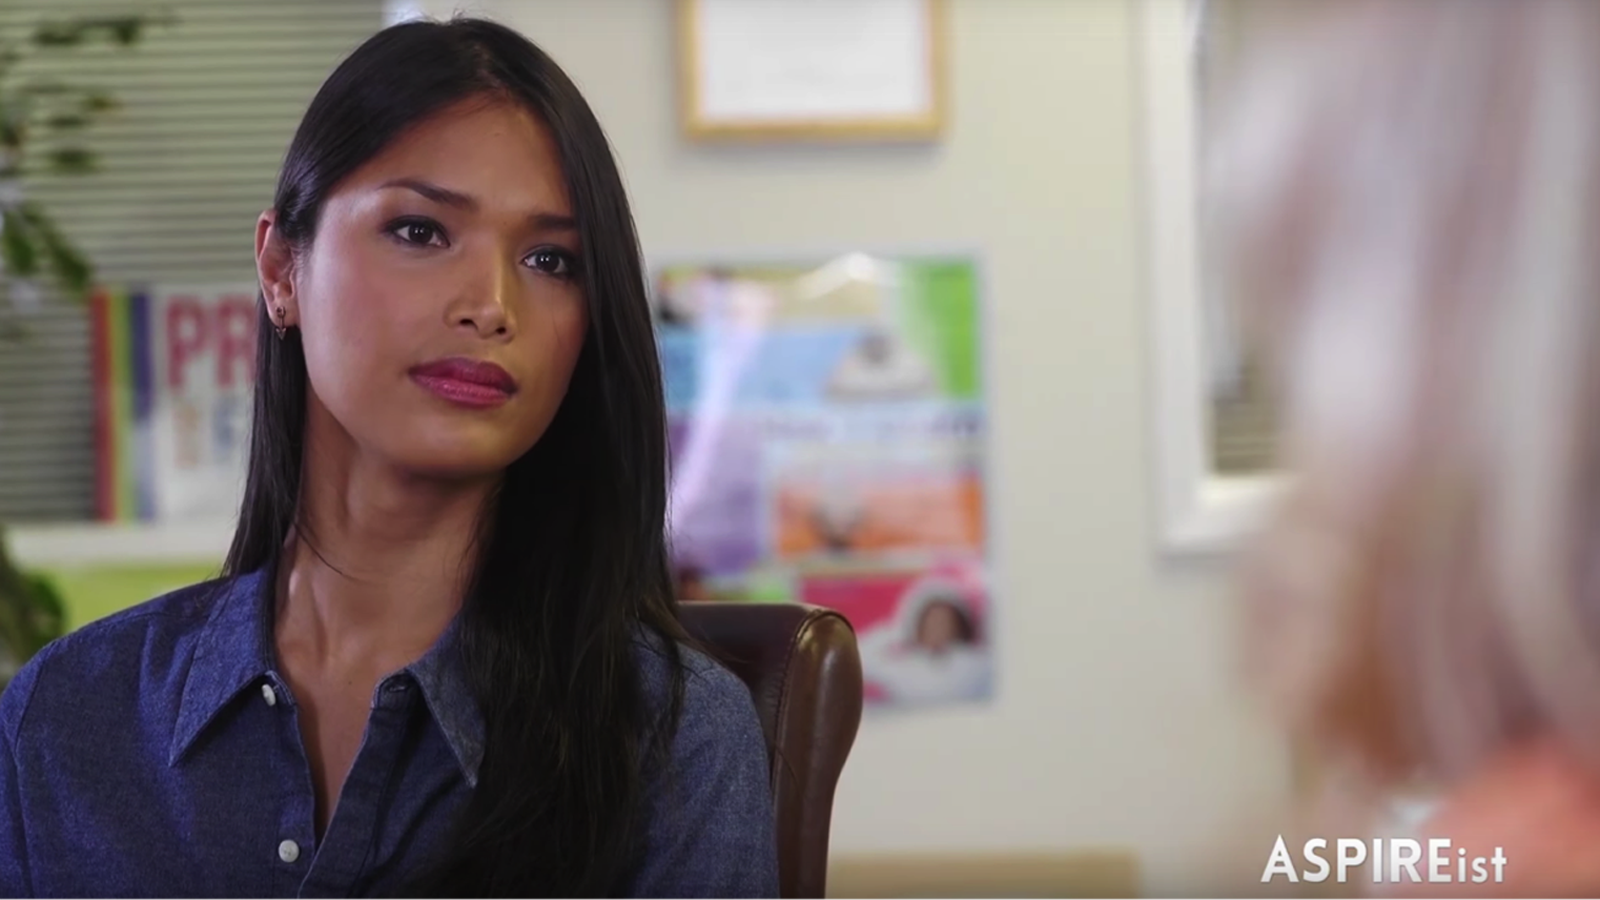 Transgender Model Geena Rocero Highlights HRC's Welcoming Schools Project on National News Show